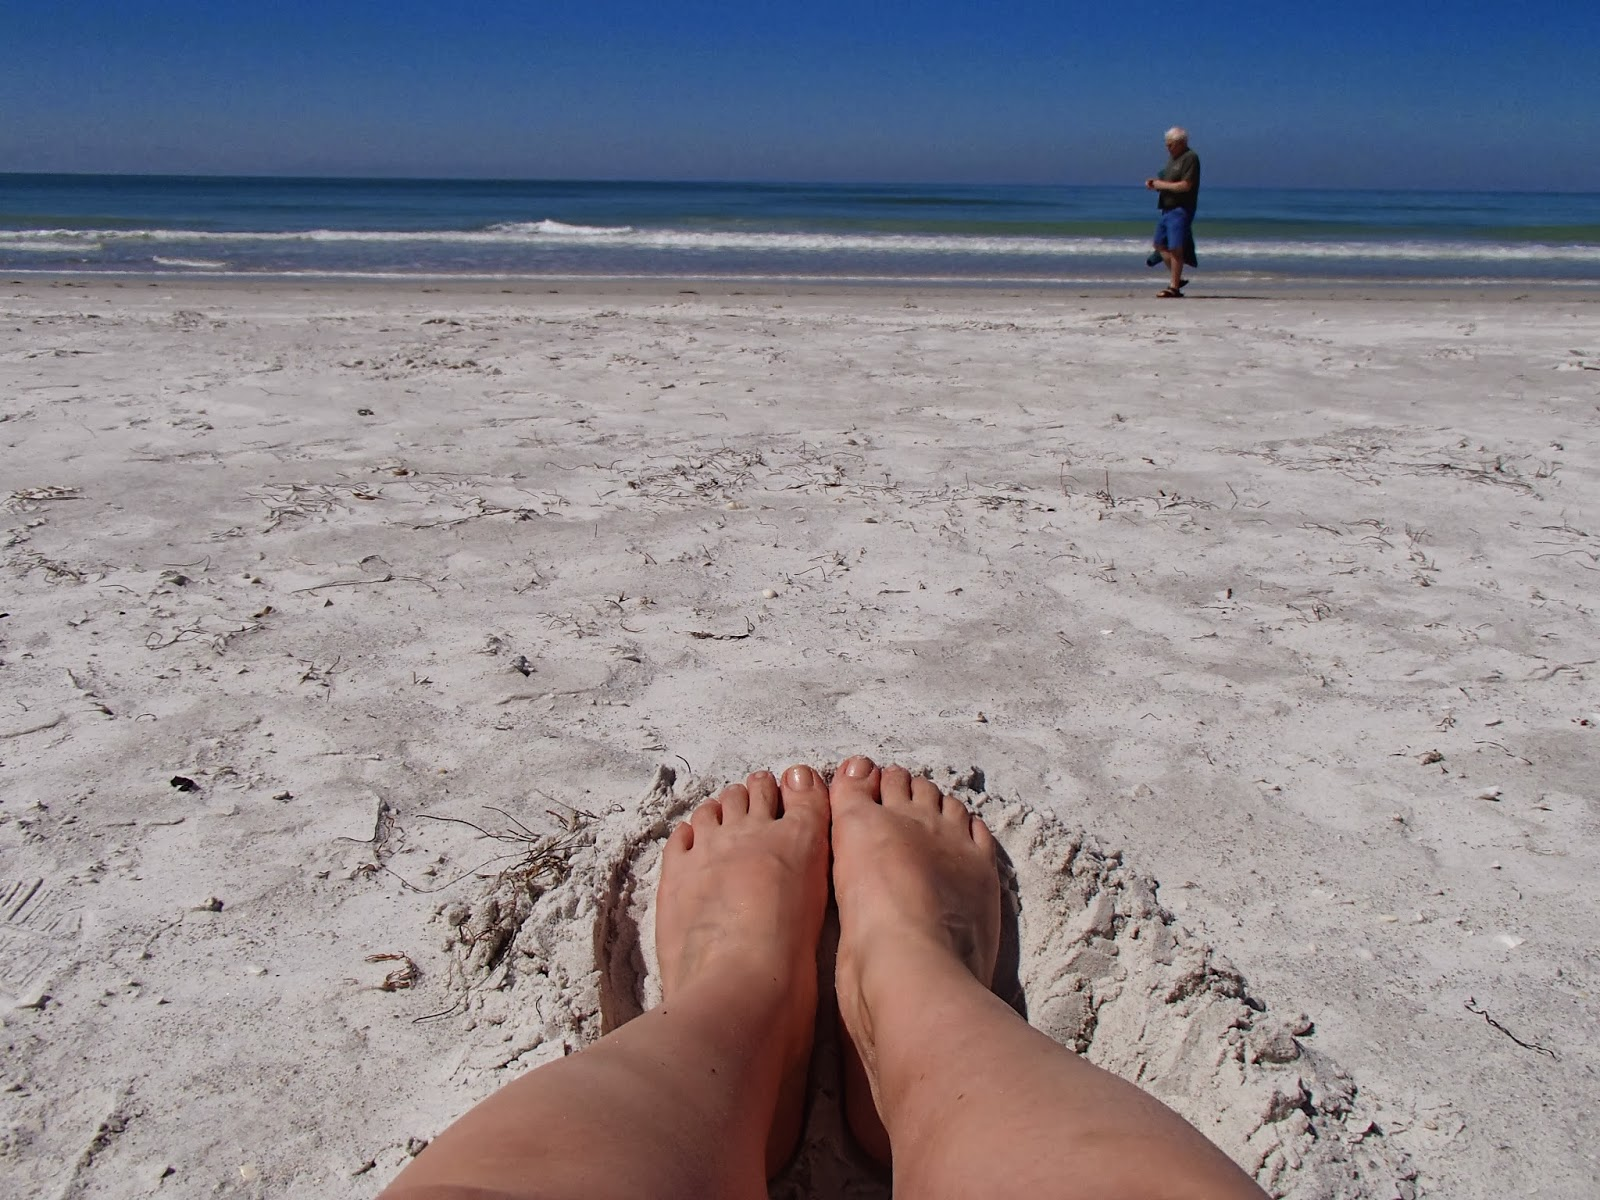 Gulf Coast Beach Feet | Navigating Hectivity by Micki Bare